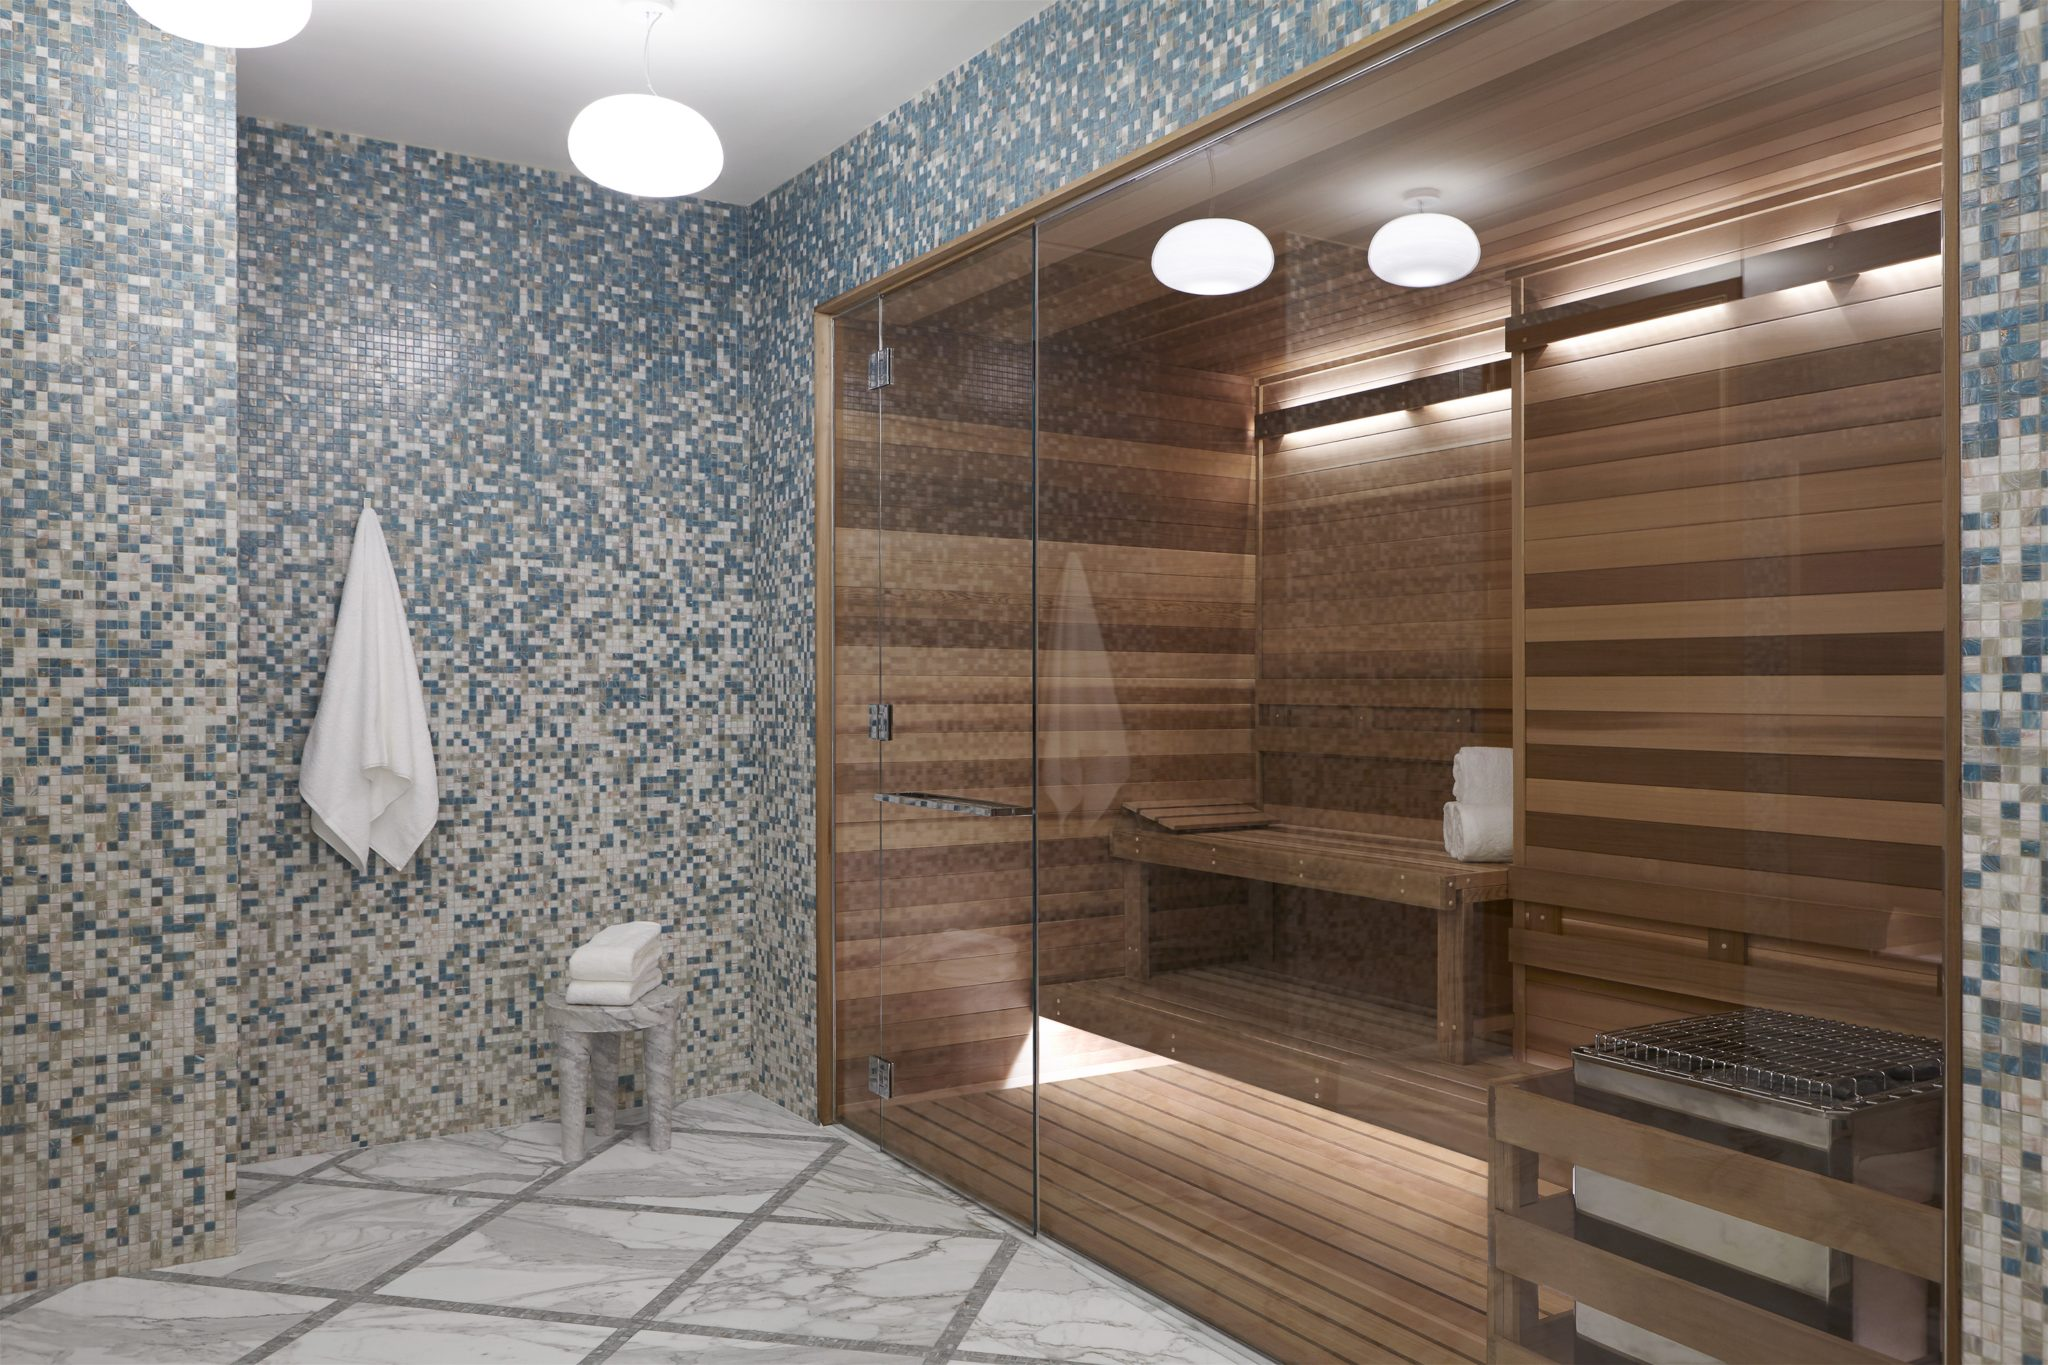 Cosmopolitan of Las Vegas - sauna with mosaic tile walls and marble floor by Daun Curry